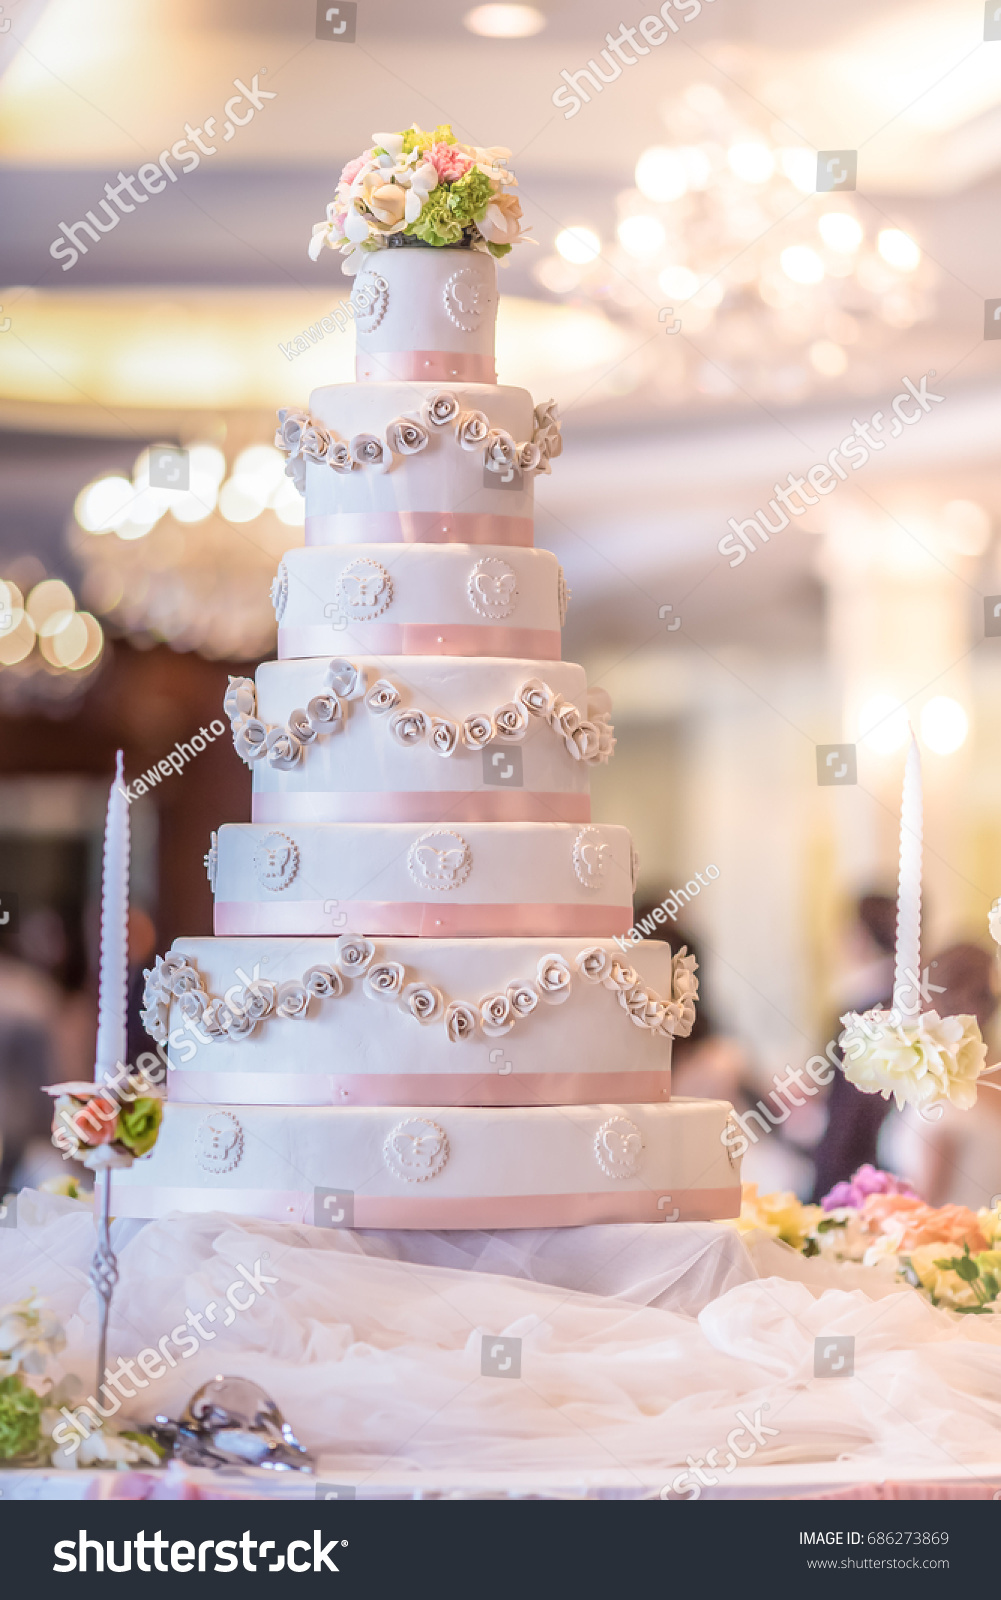 Wedding cake symbol happiness bride stock photo 686273869 shutterstock wedding cake symbol of the happiness of the bride biocorpaavc Image collections